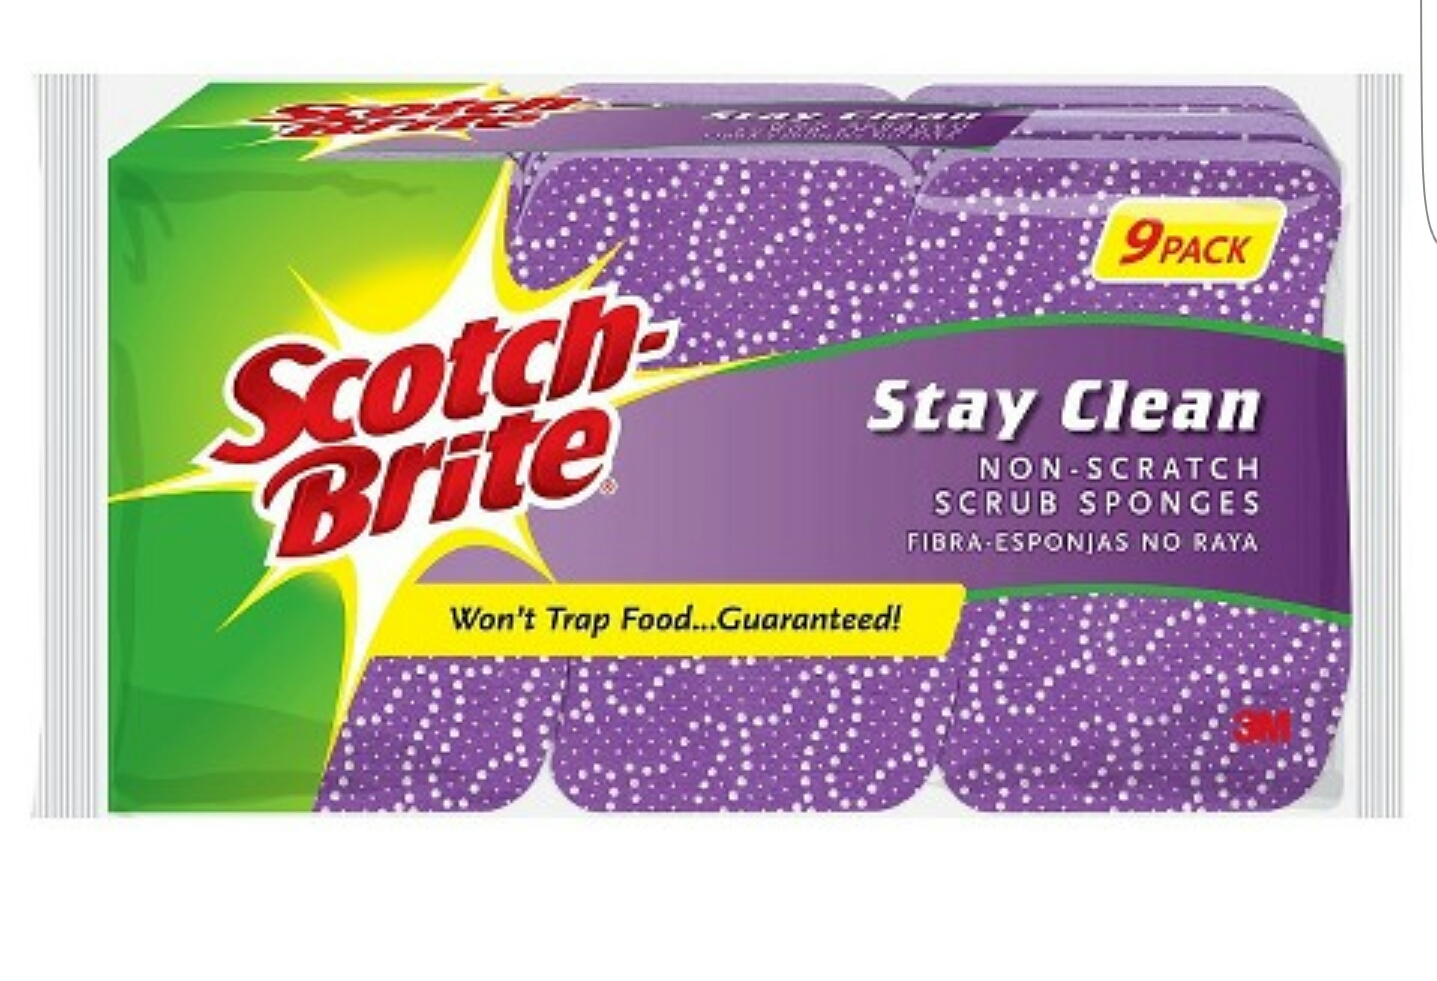 Scotch-Brite Cleaning Sponges SCOTCH-BRITE Multicolor uploaded by Nane F.